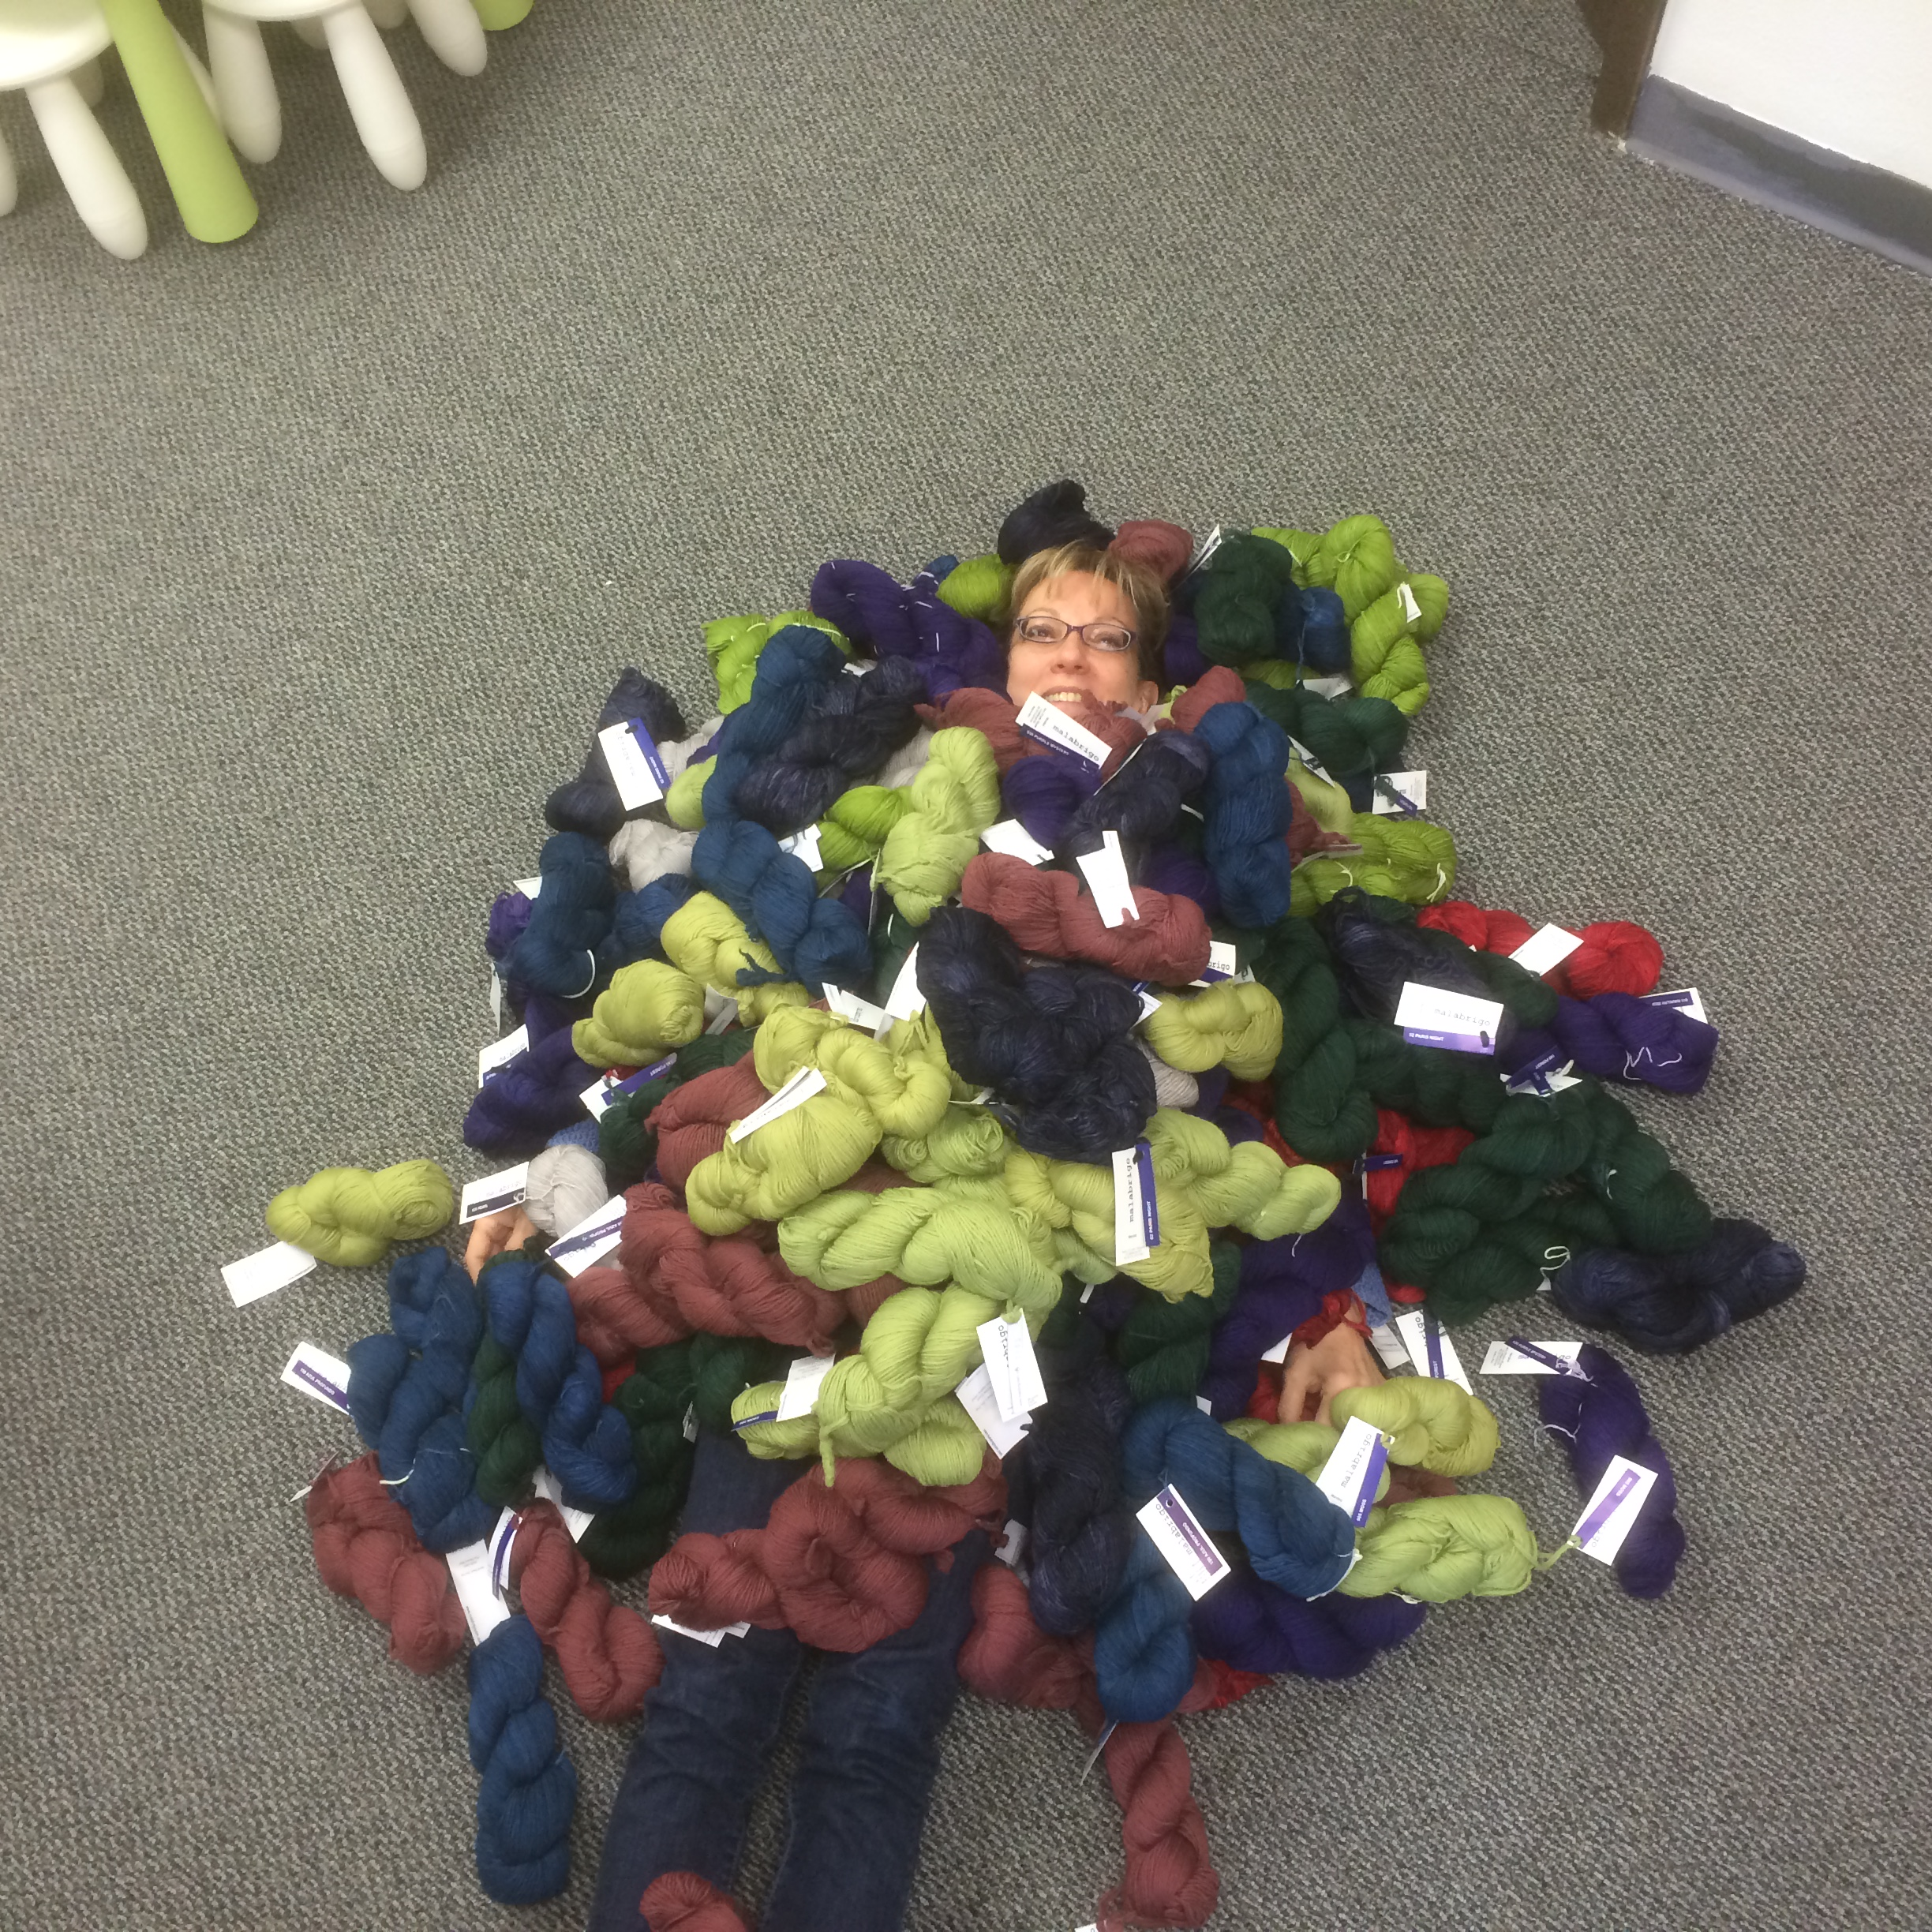 Shelia is buried in our new shippment of Malabrigo Yarn. Come by and feel and touch!!